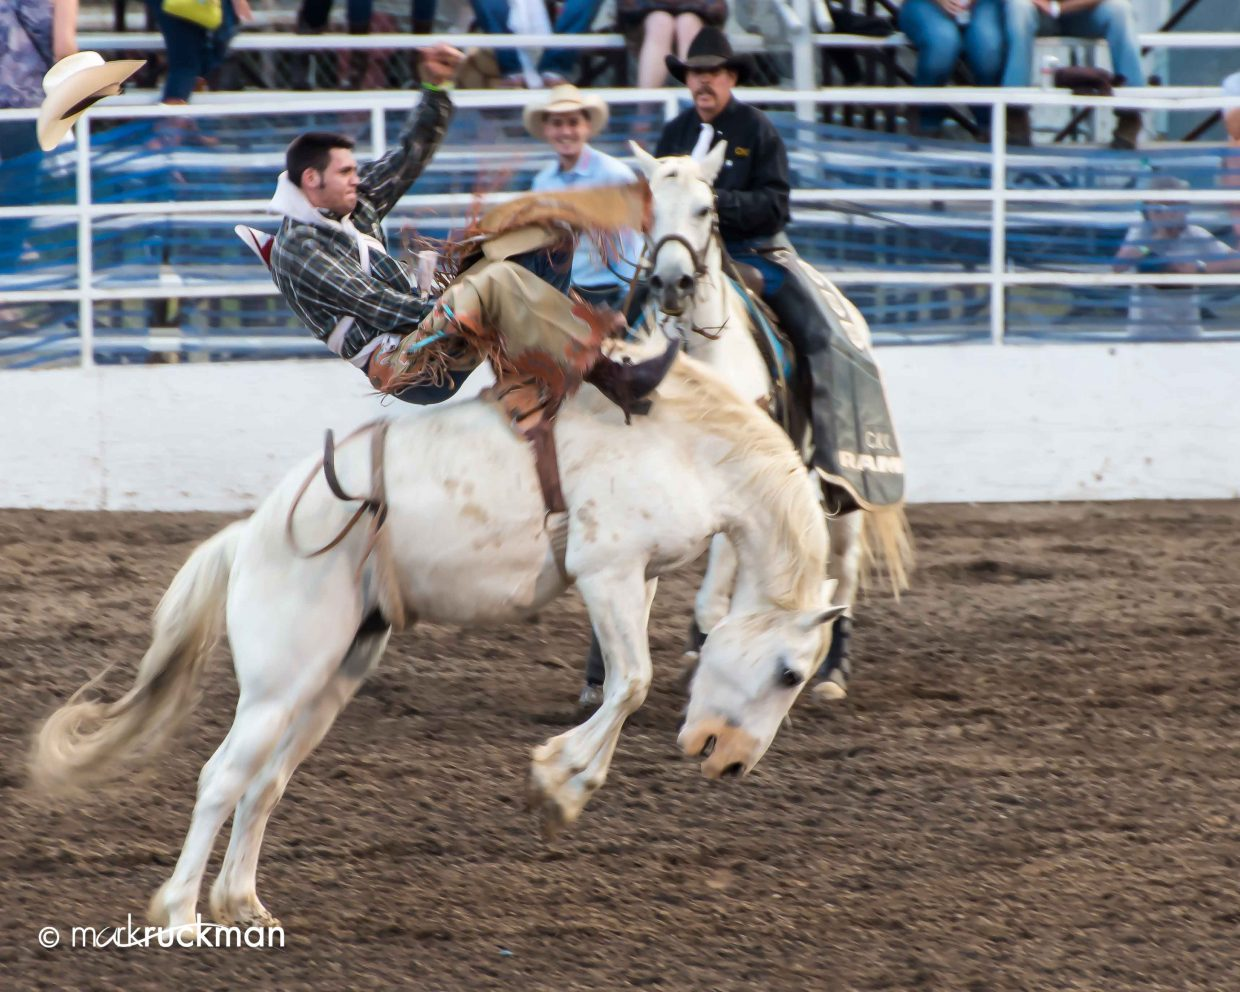 Saturday night fun at the Steamboat Springs rodeo. Submitted by: Mark Ruckman